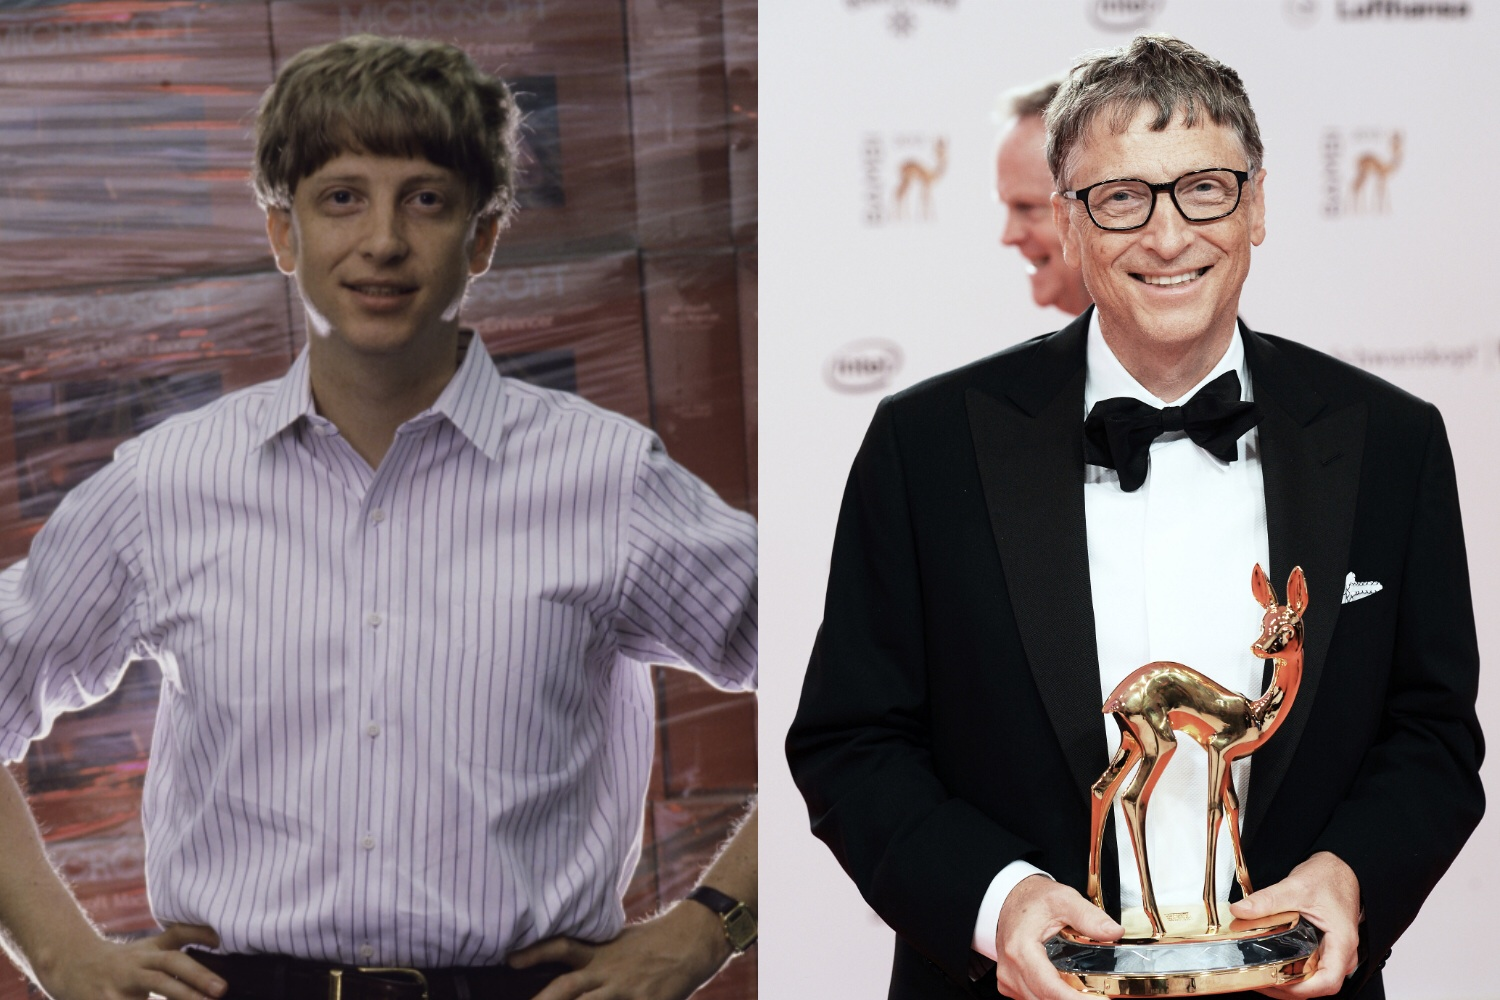 Bill Gates surrounded by copies of Windows in 1986 and in November, accepting the Bambi Award in Berlin.